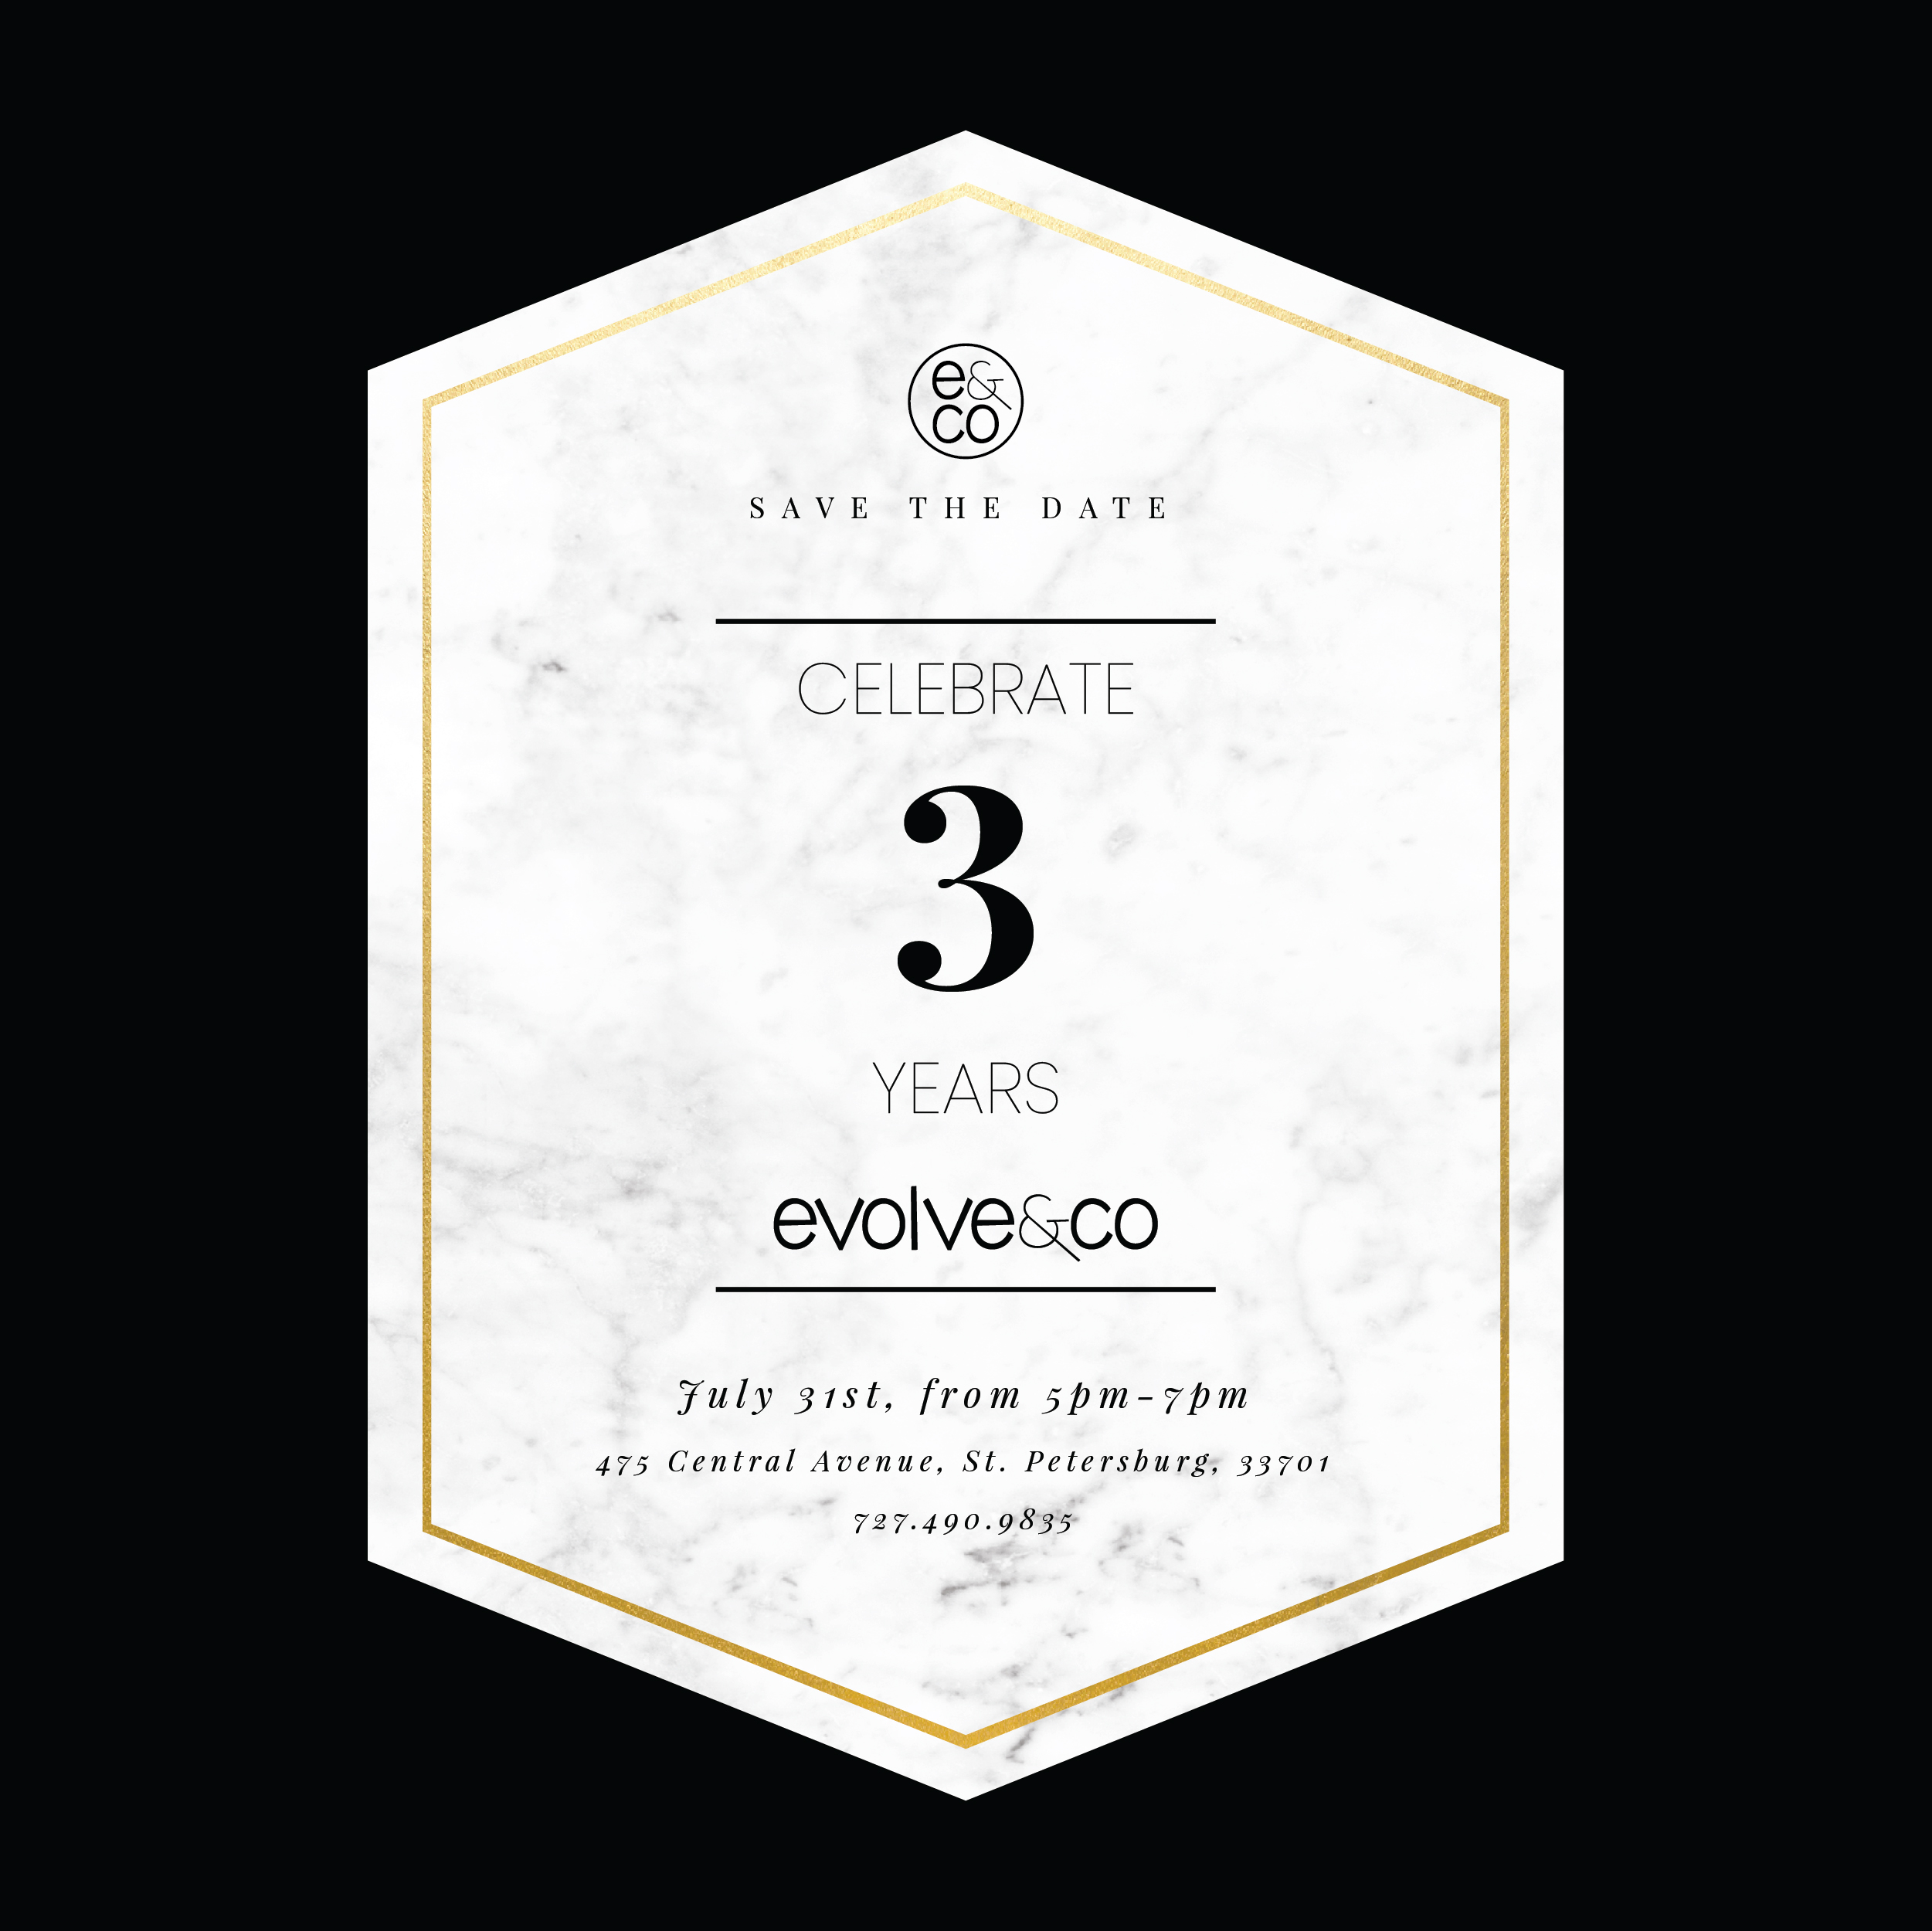 Evolve & Co Hosts Third Anniversary Reception July 31st